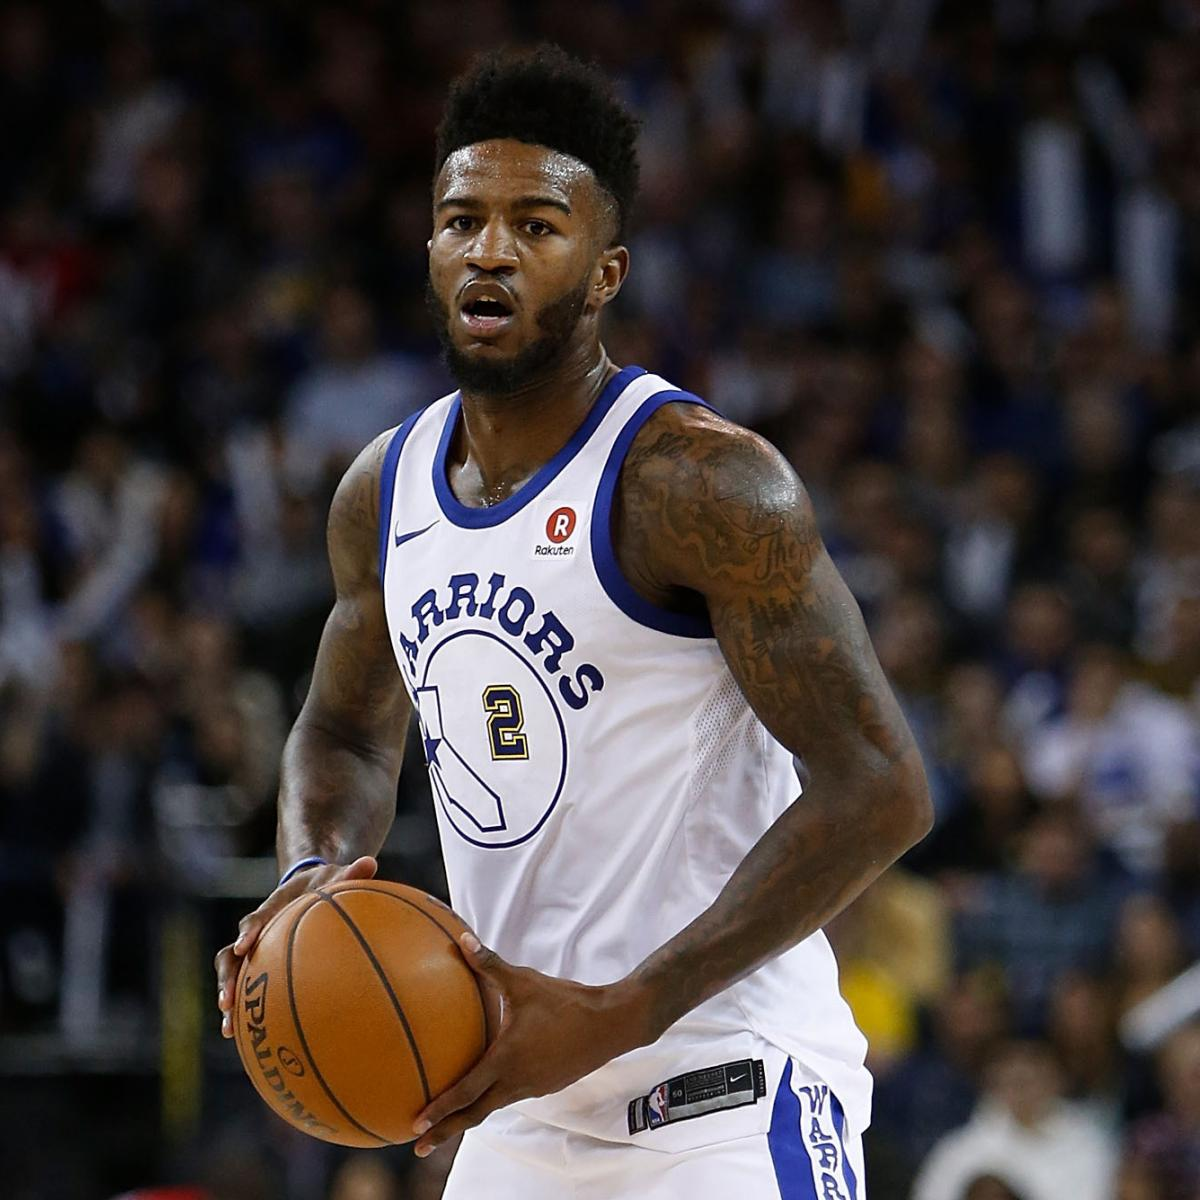 Jordan Bell Exits Vs. Nets With Ankle Injury